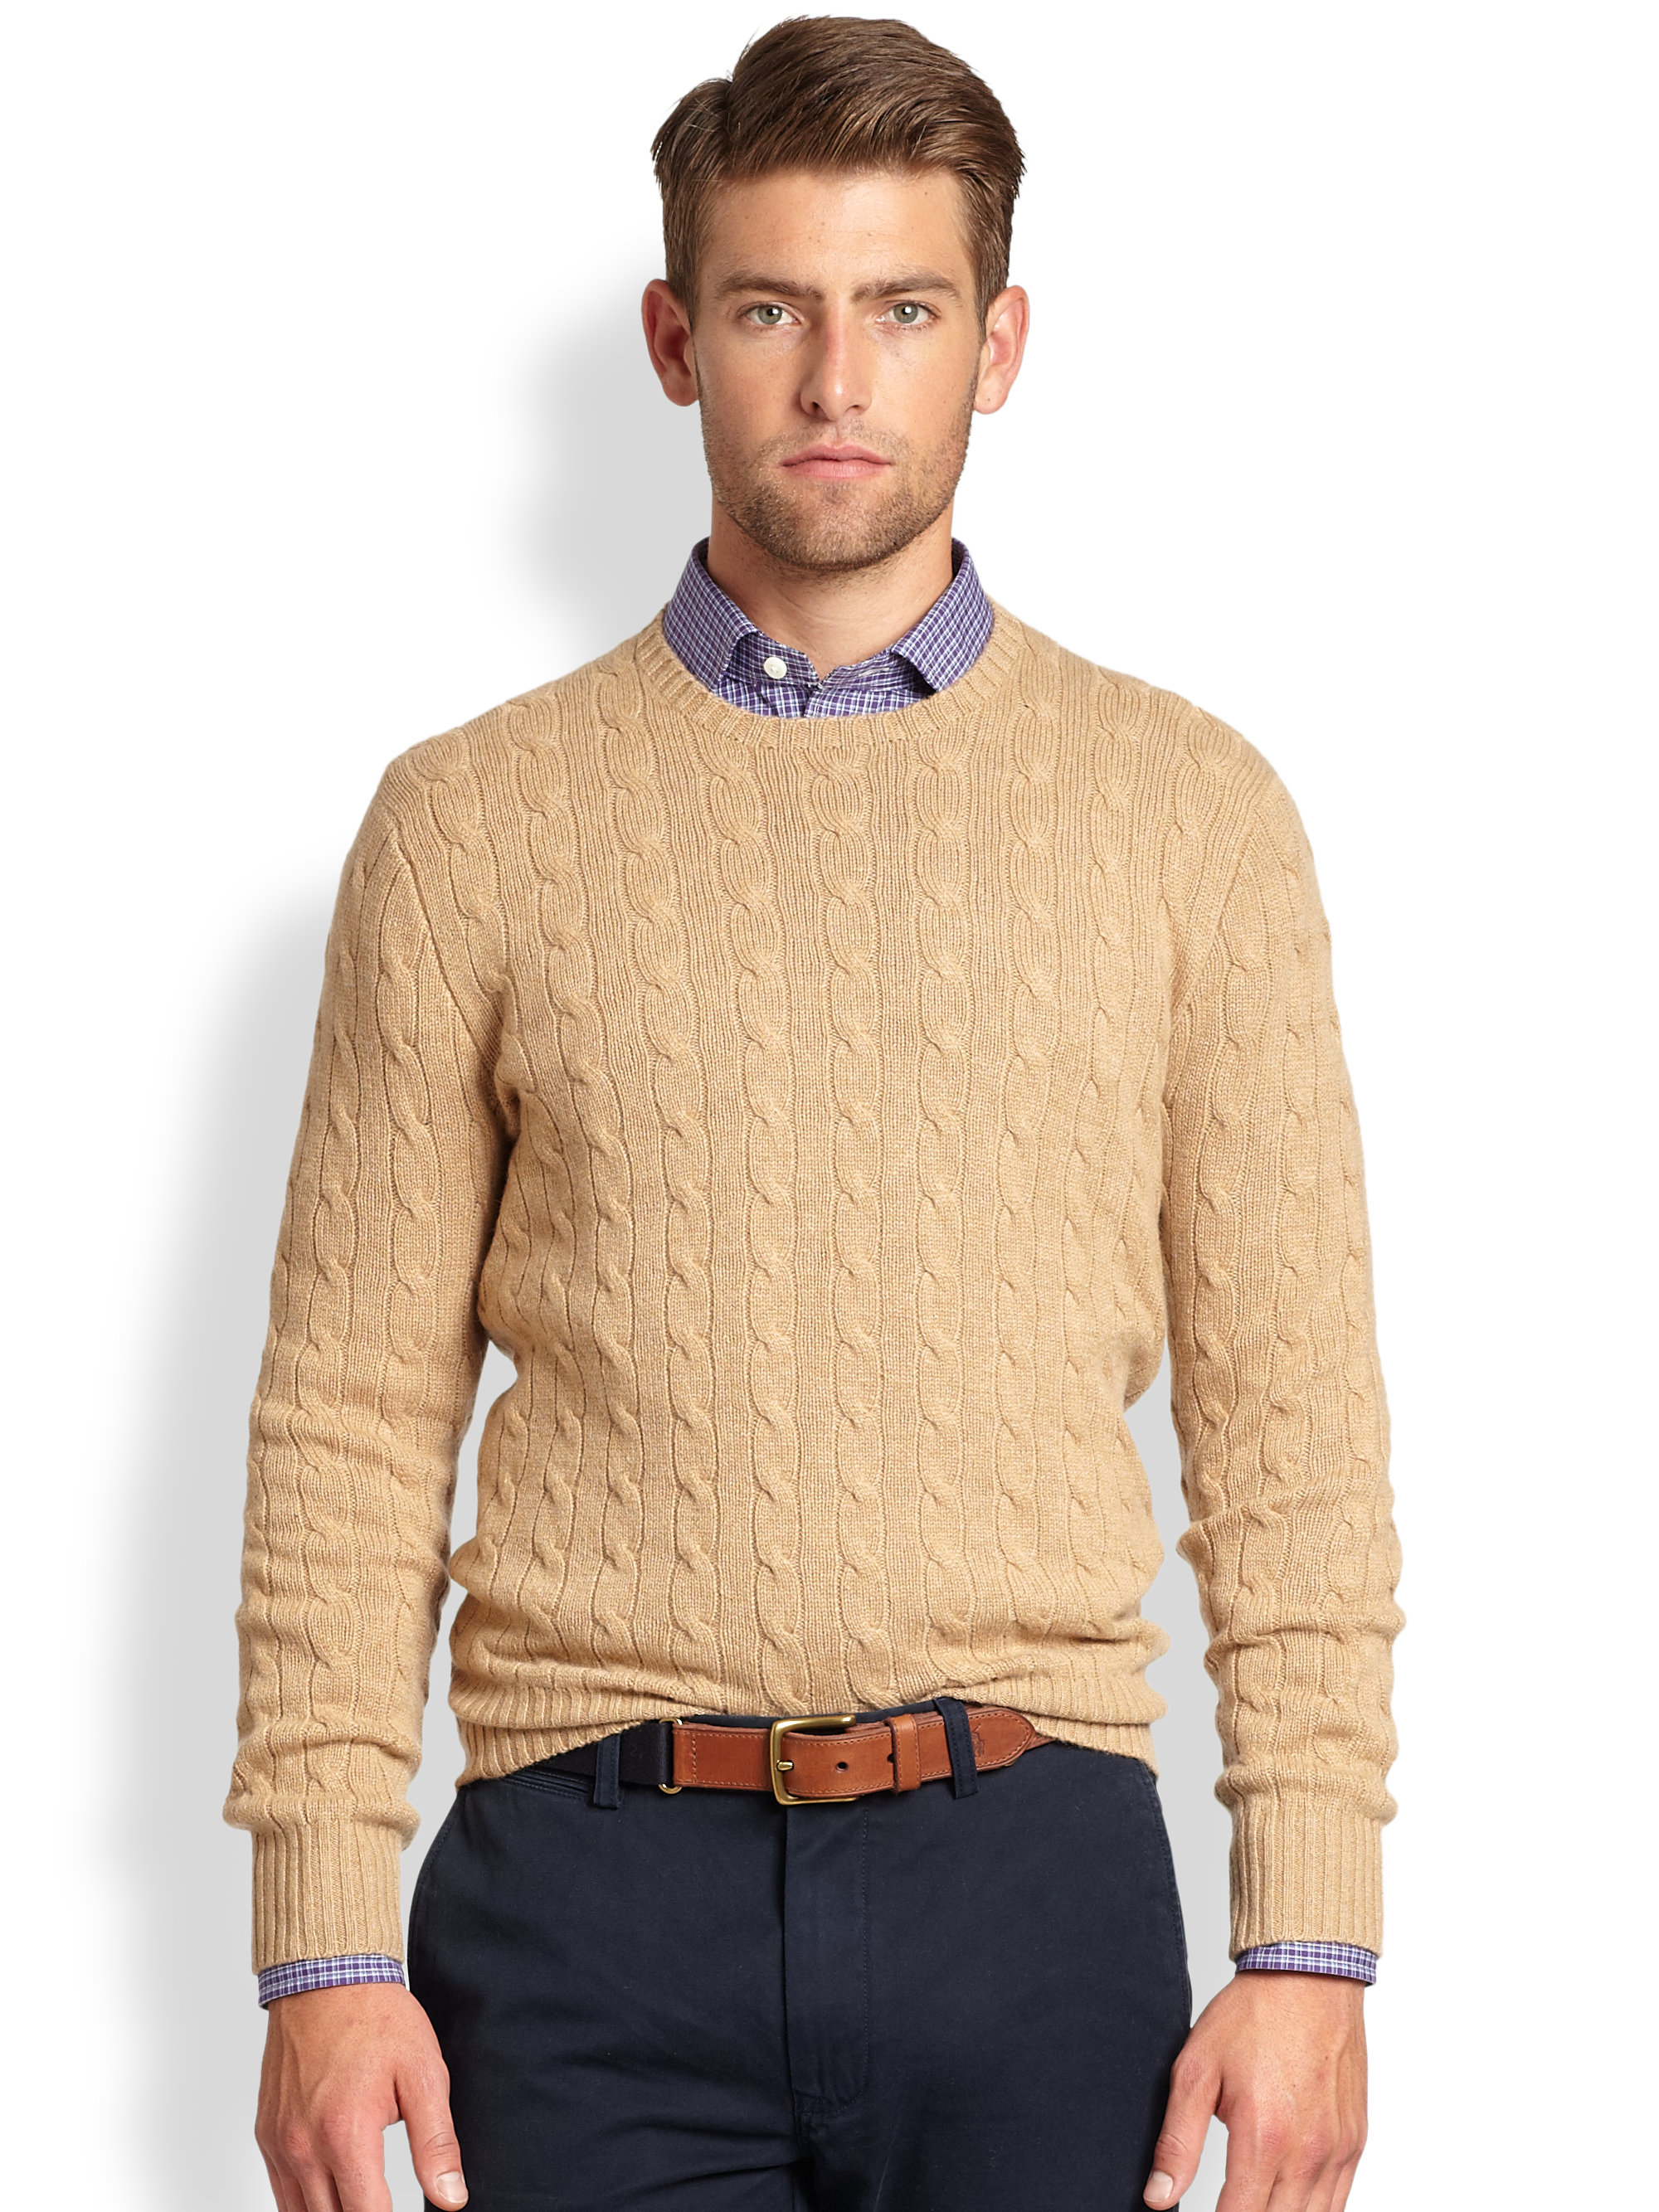 876e2dd367 Polo Ralph Lauren Cable Knit Cashmere Crewneck Sweater in Natural ...